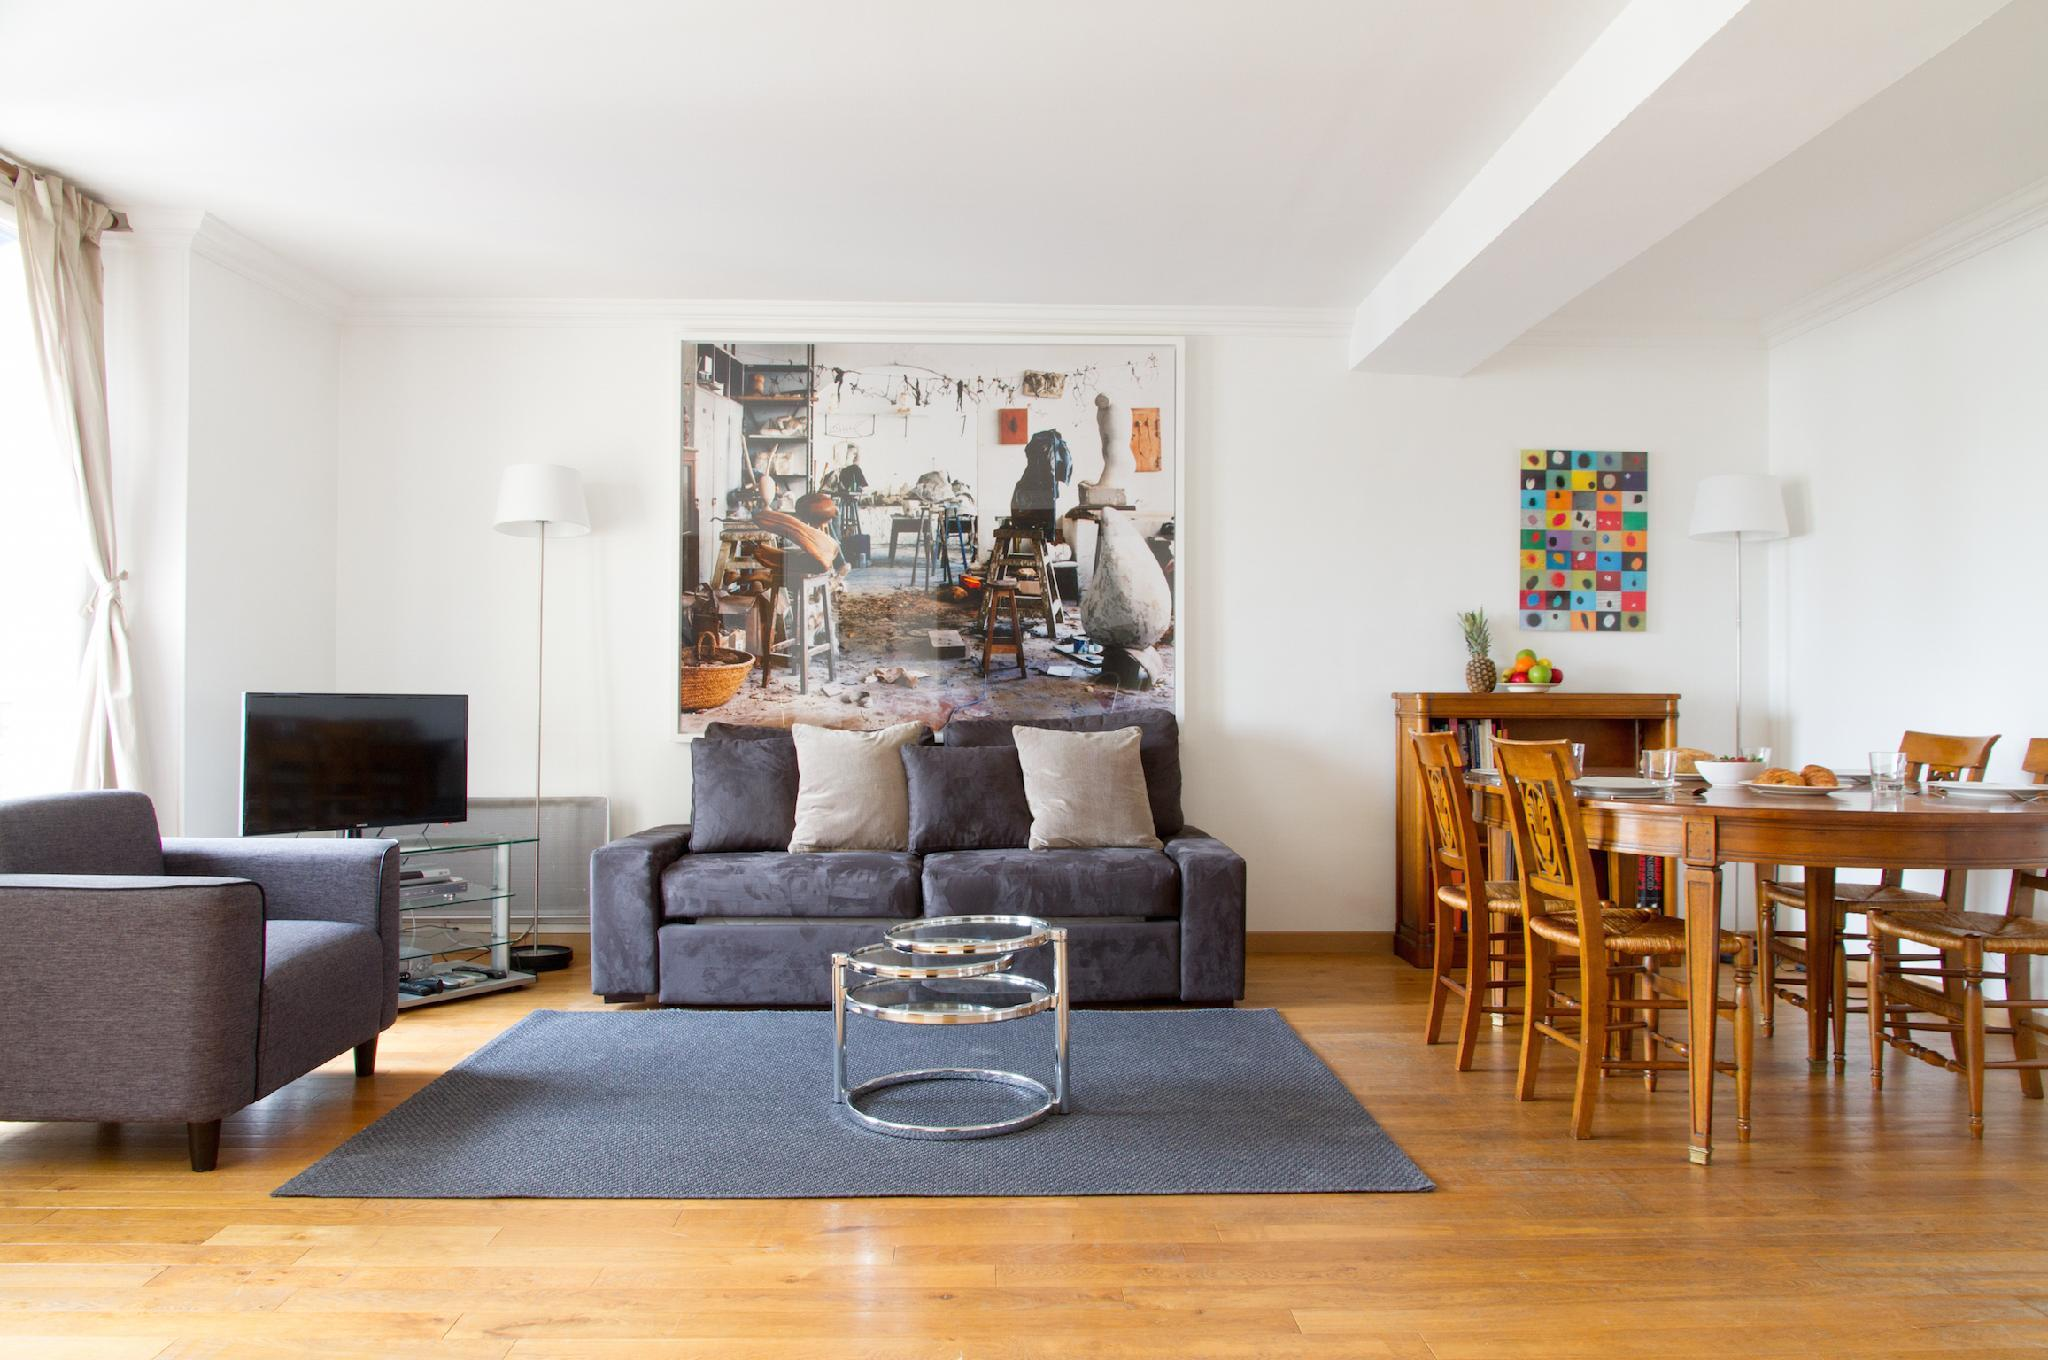 ODEON VIEW- LOVELY 2BR IN ST. GERMAIN'S HEART